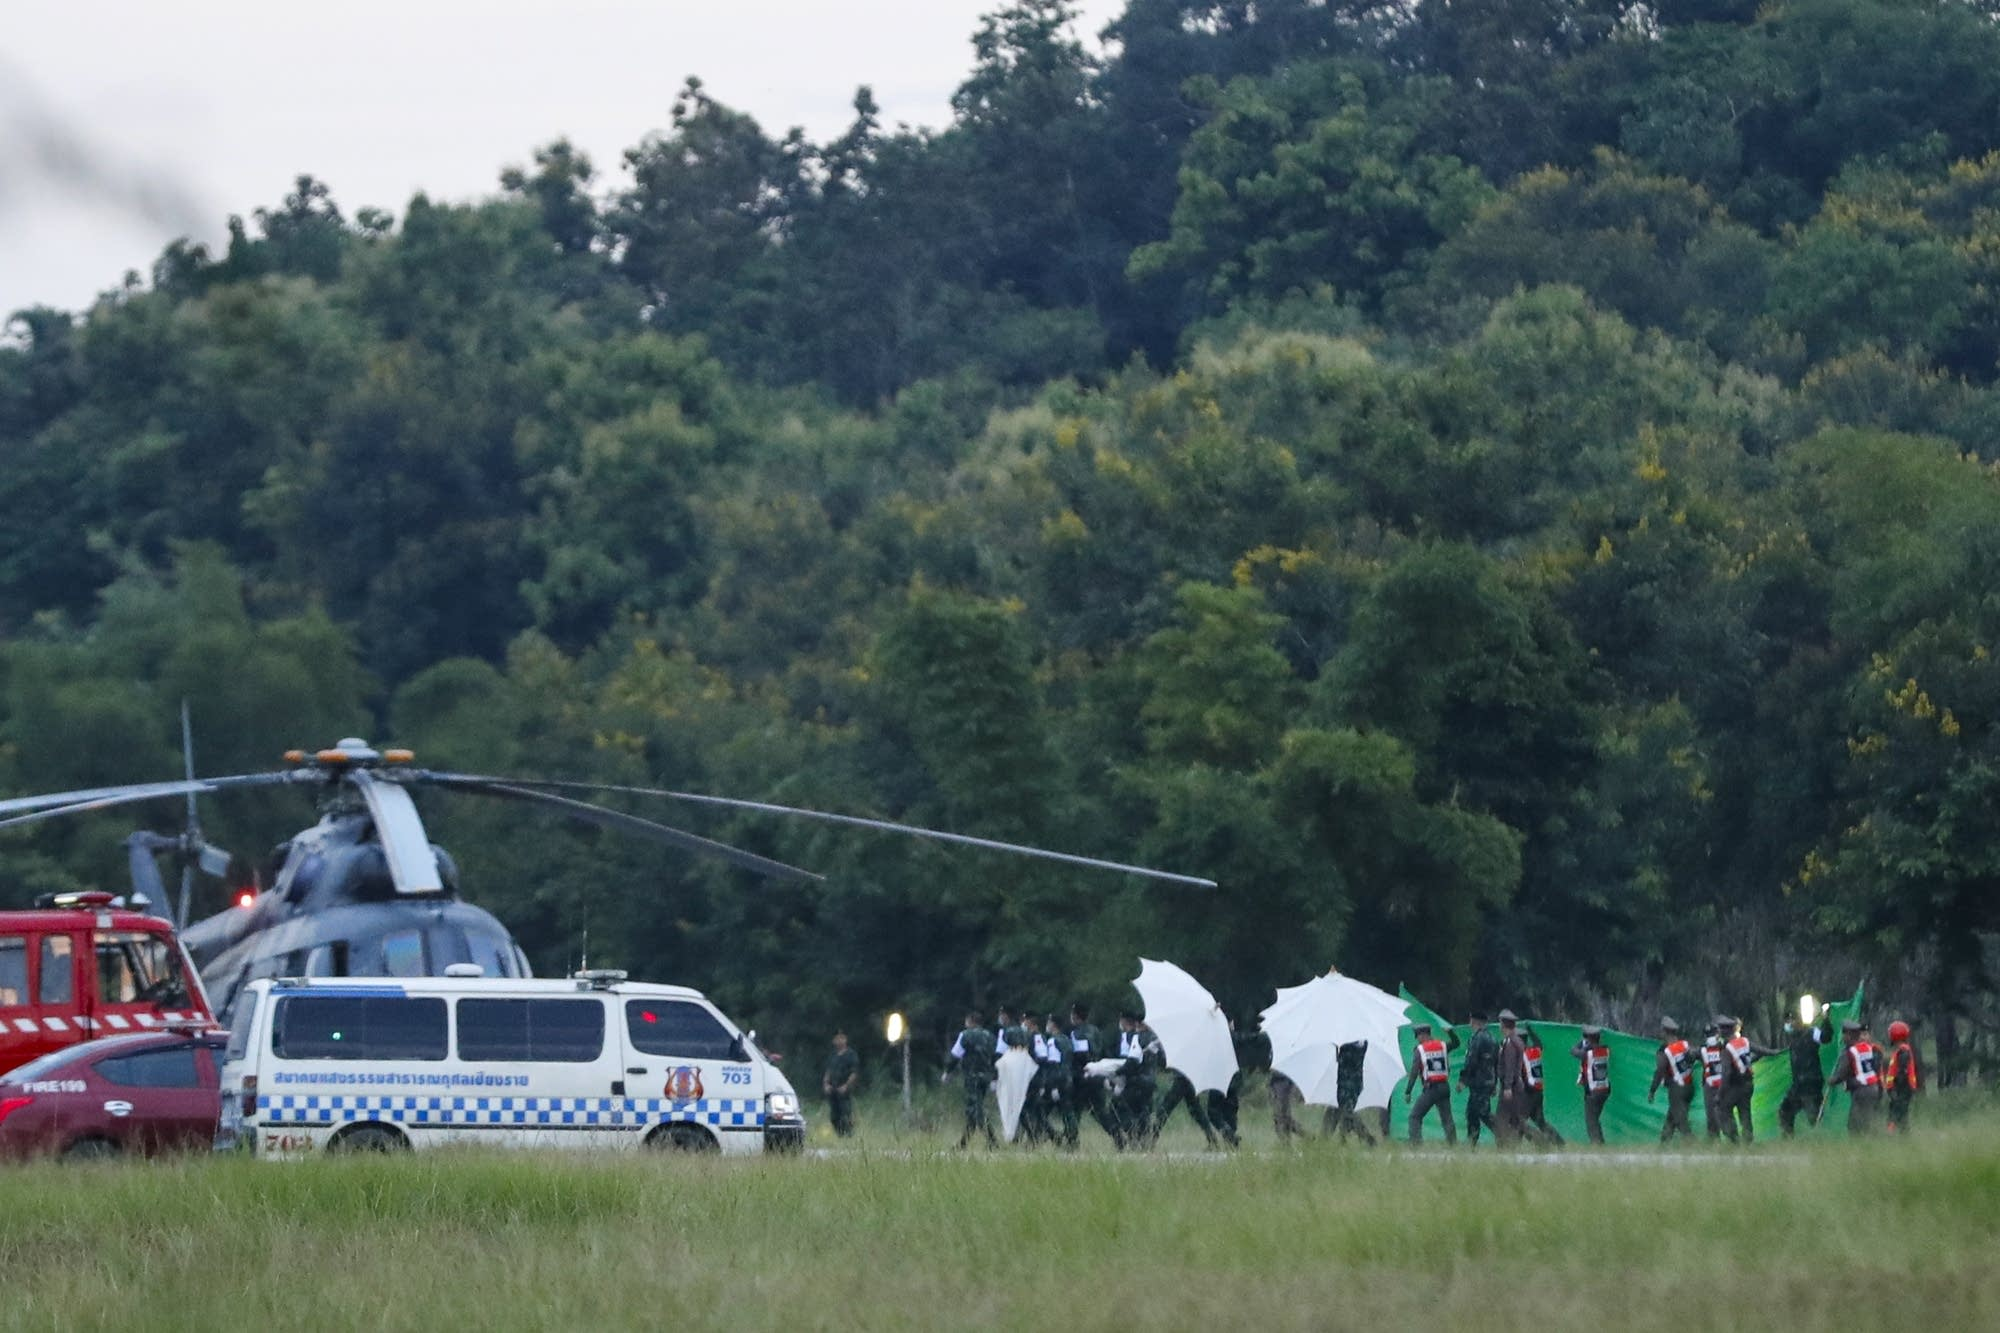 An emergency team rushes to a helicopter believed to be carrying a boy.